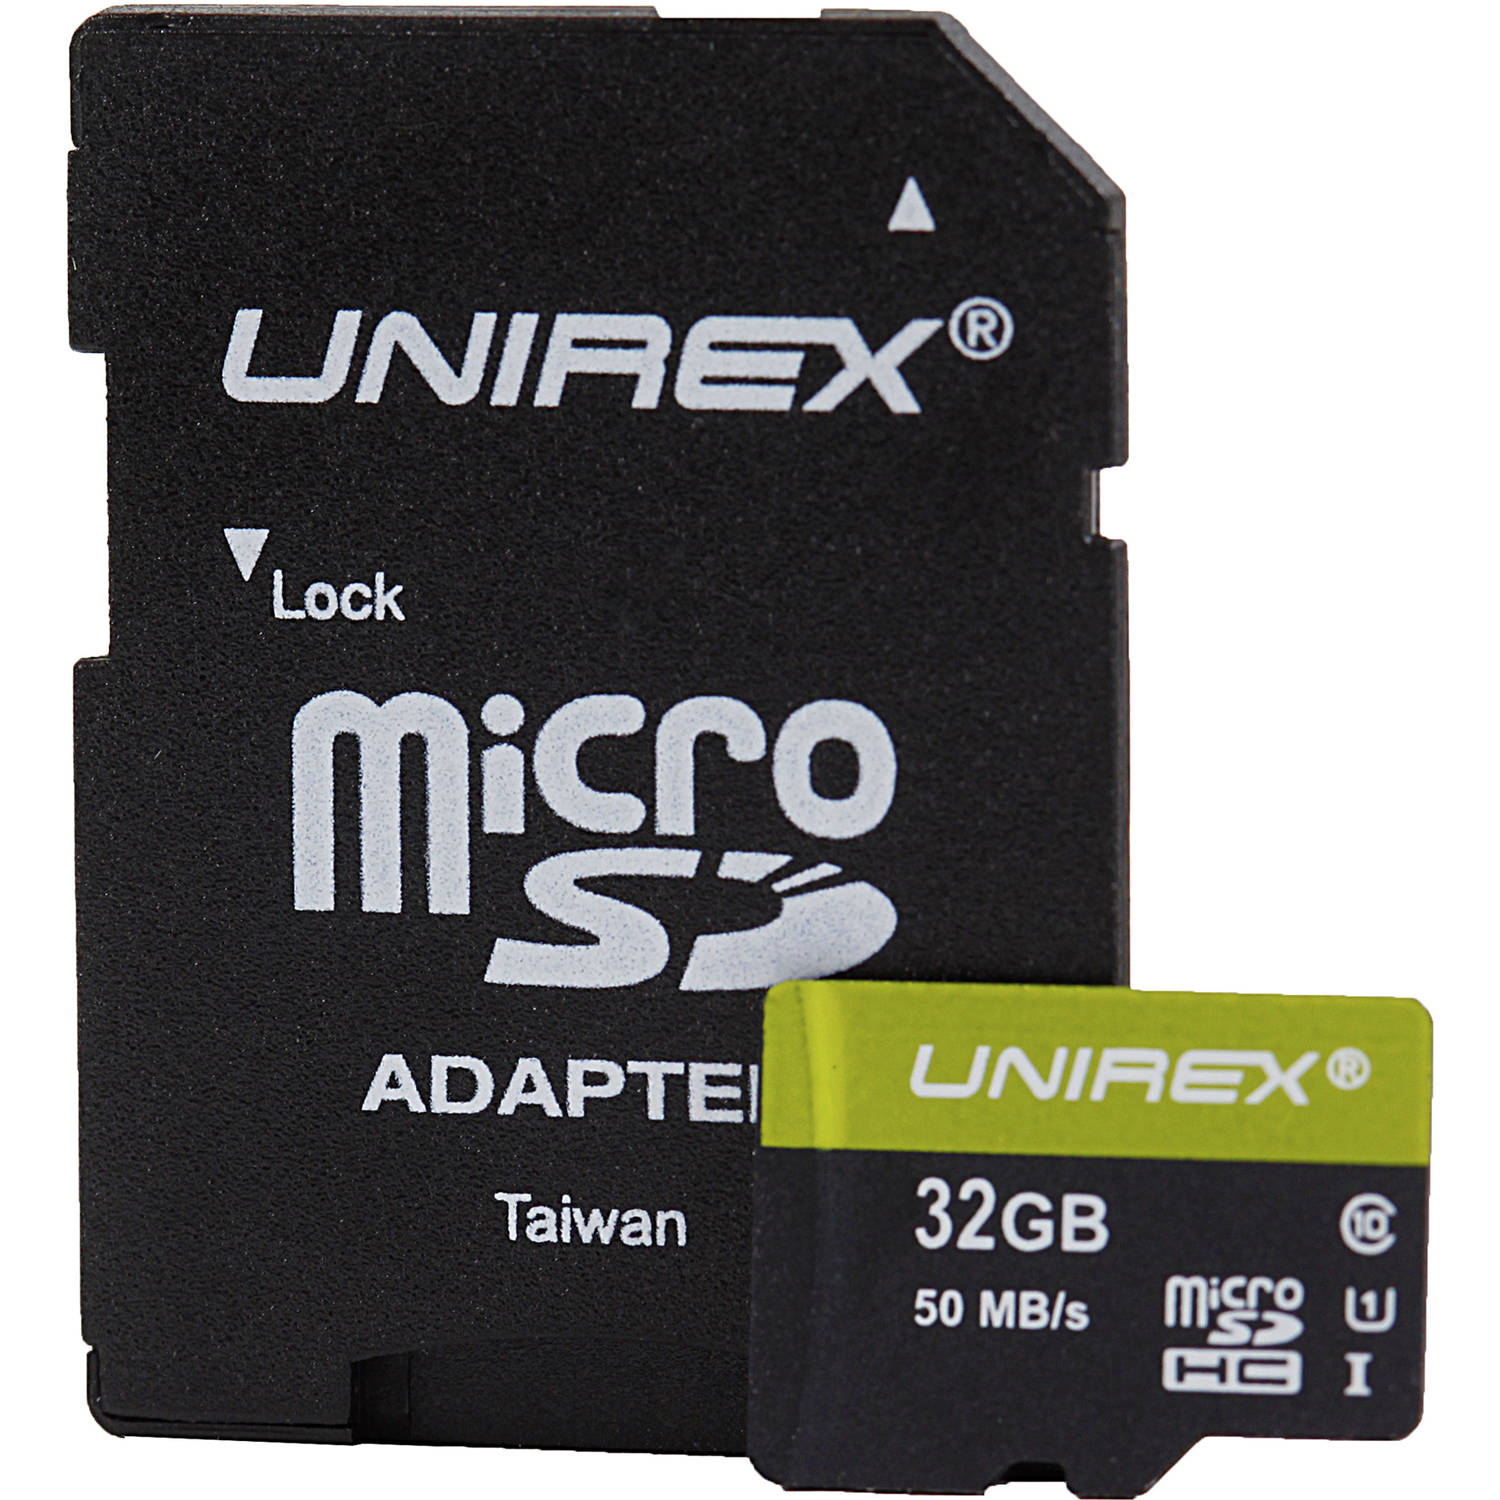 Unirex 32GB C10 UHS-1 microSD Memory Card with SD Adapter